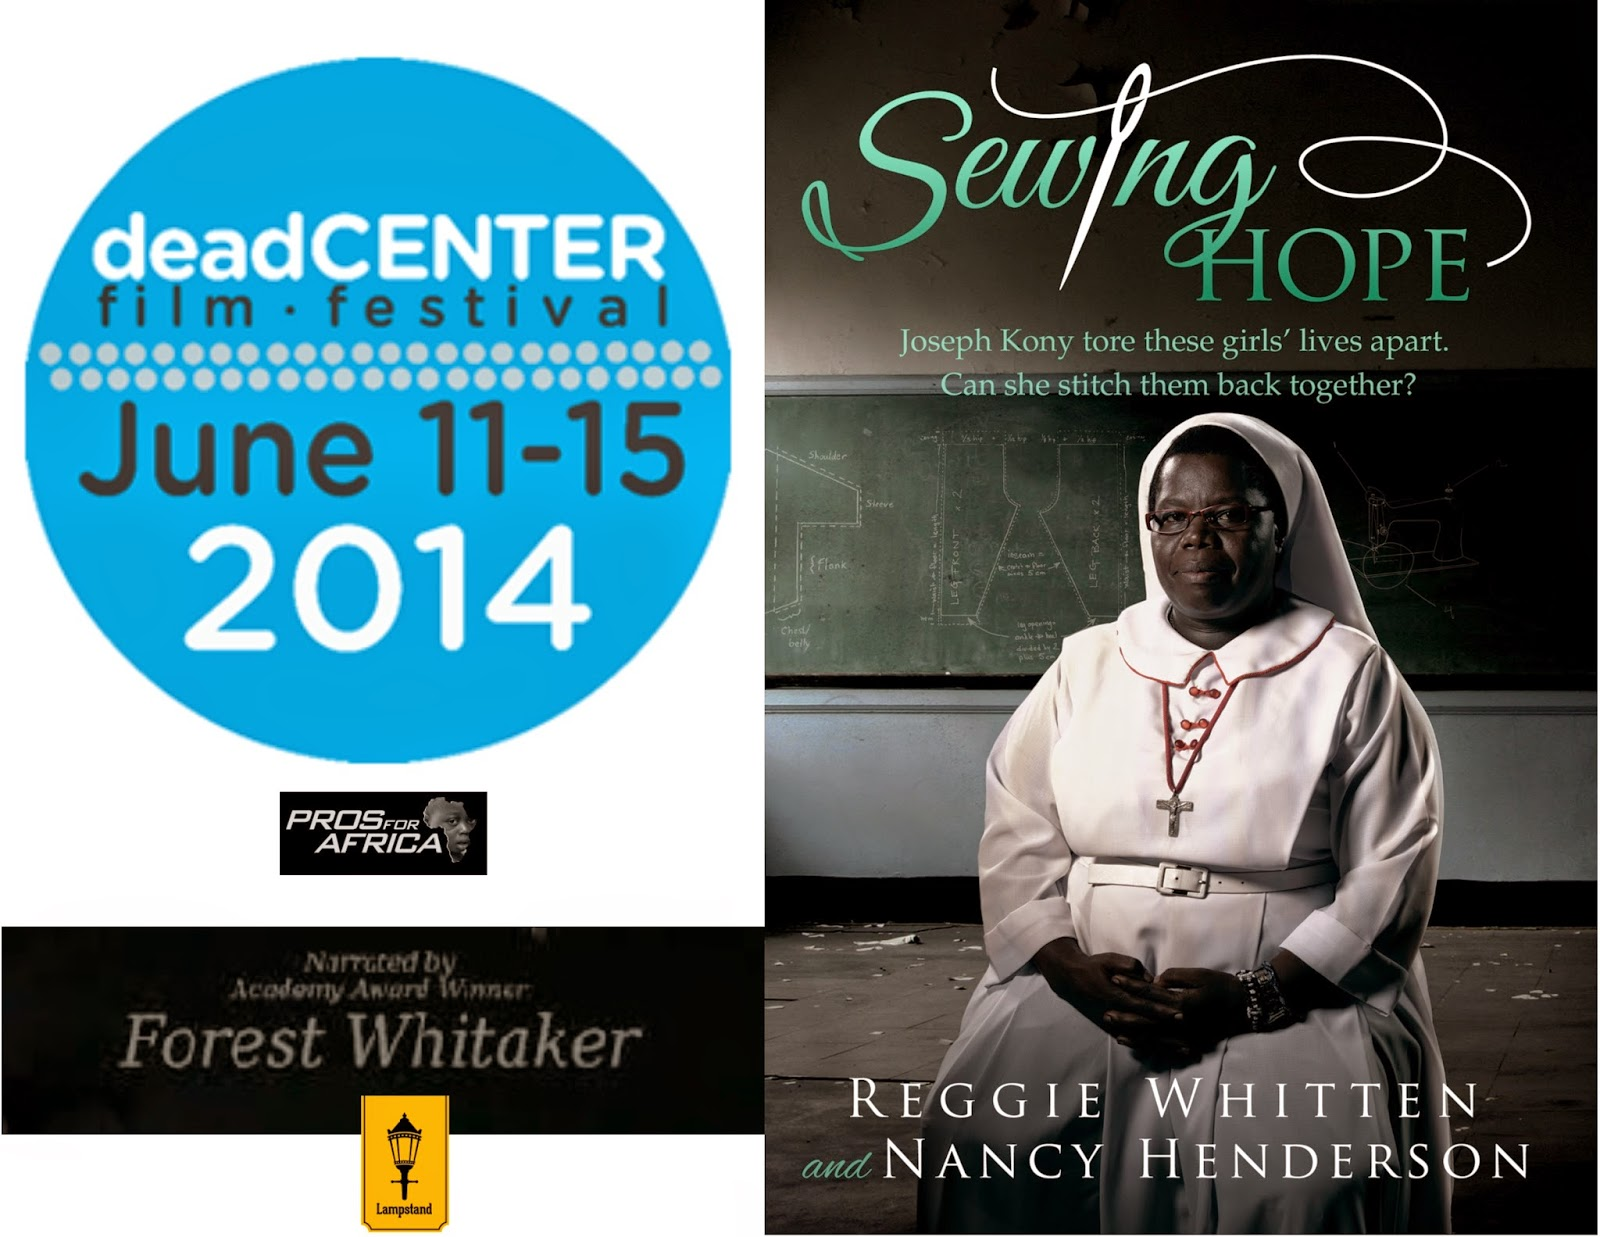 """""""SEWING HOPE"""" documentary film - Sister Rosemary Nyirumbe's life --- deadCENTER Film Festival - OKC - June 14th & 15th 2014"""